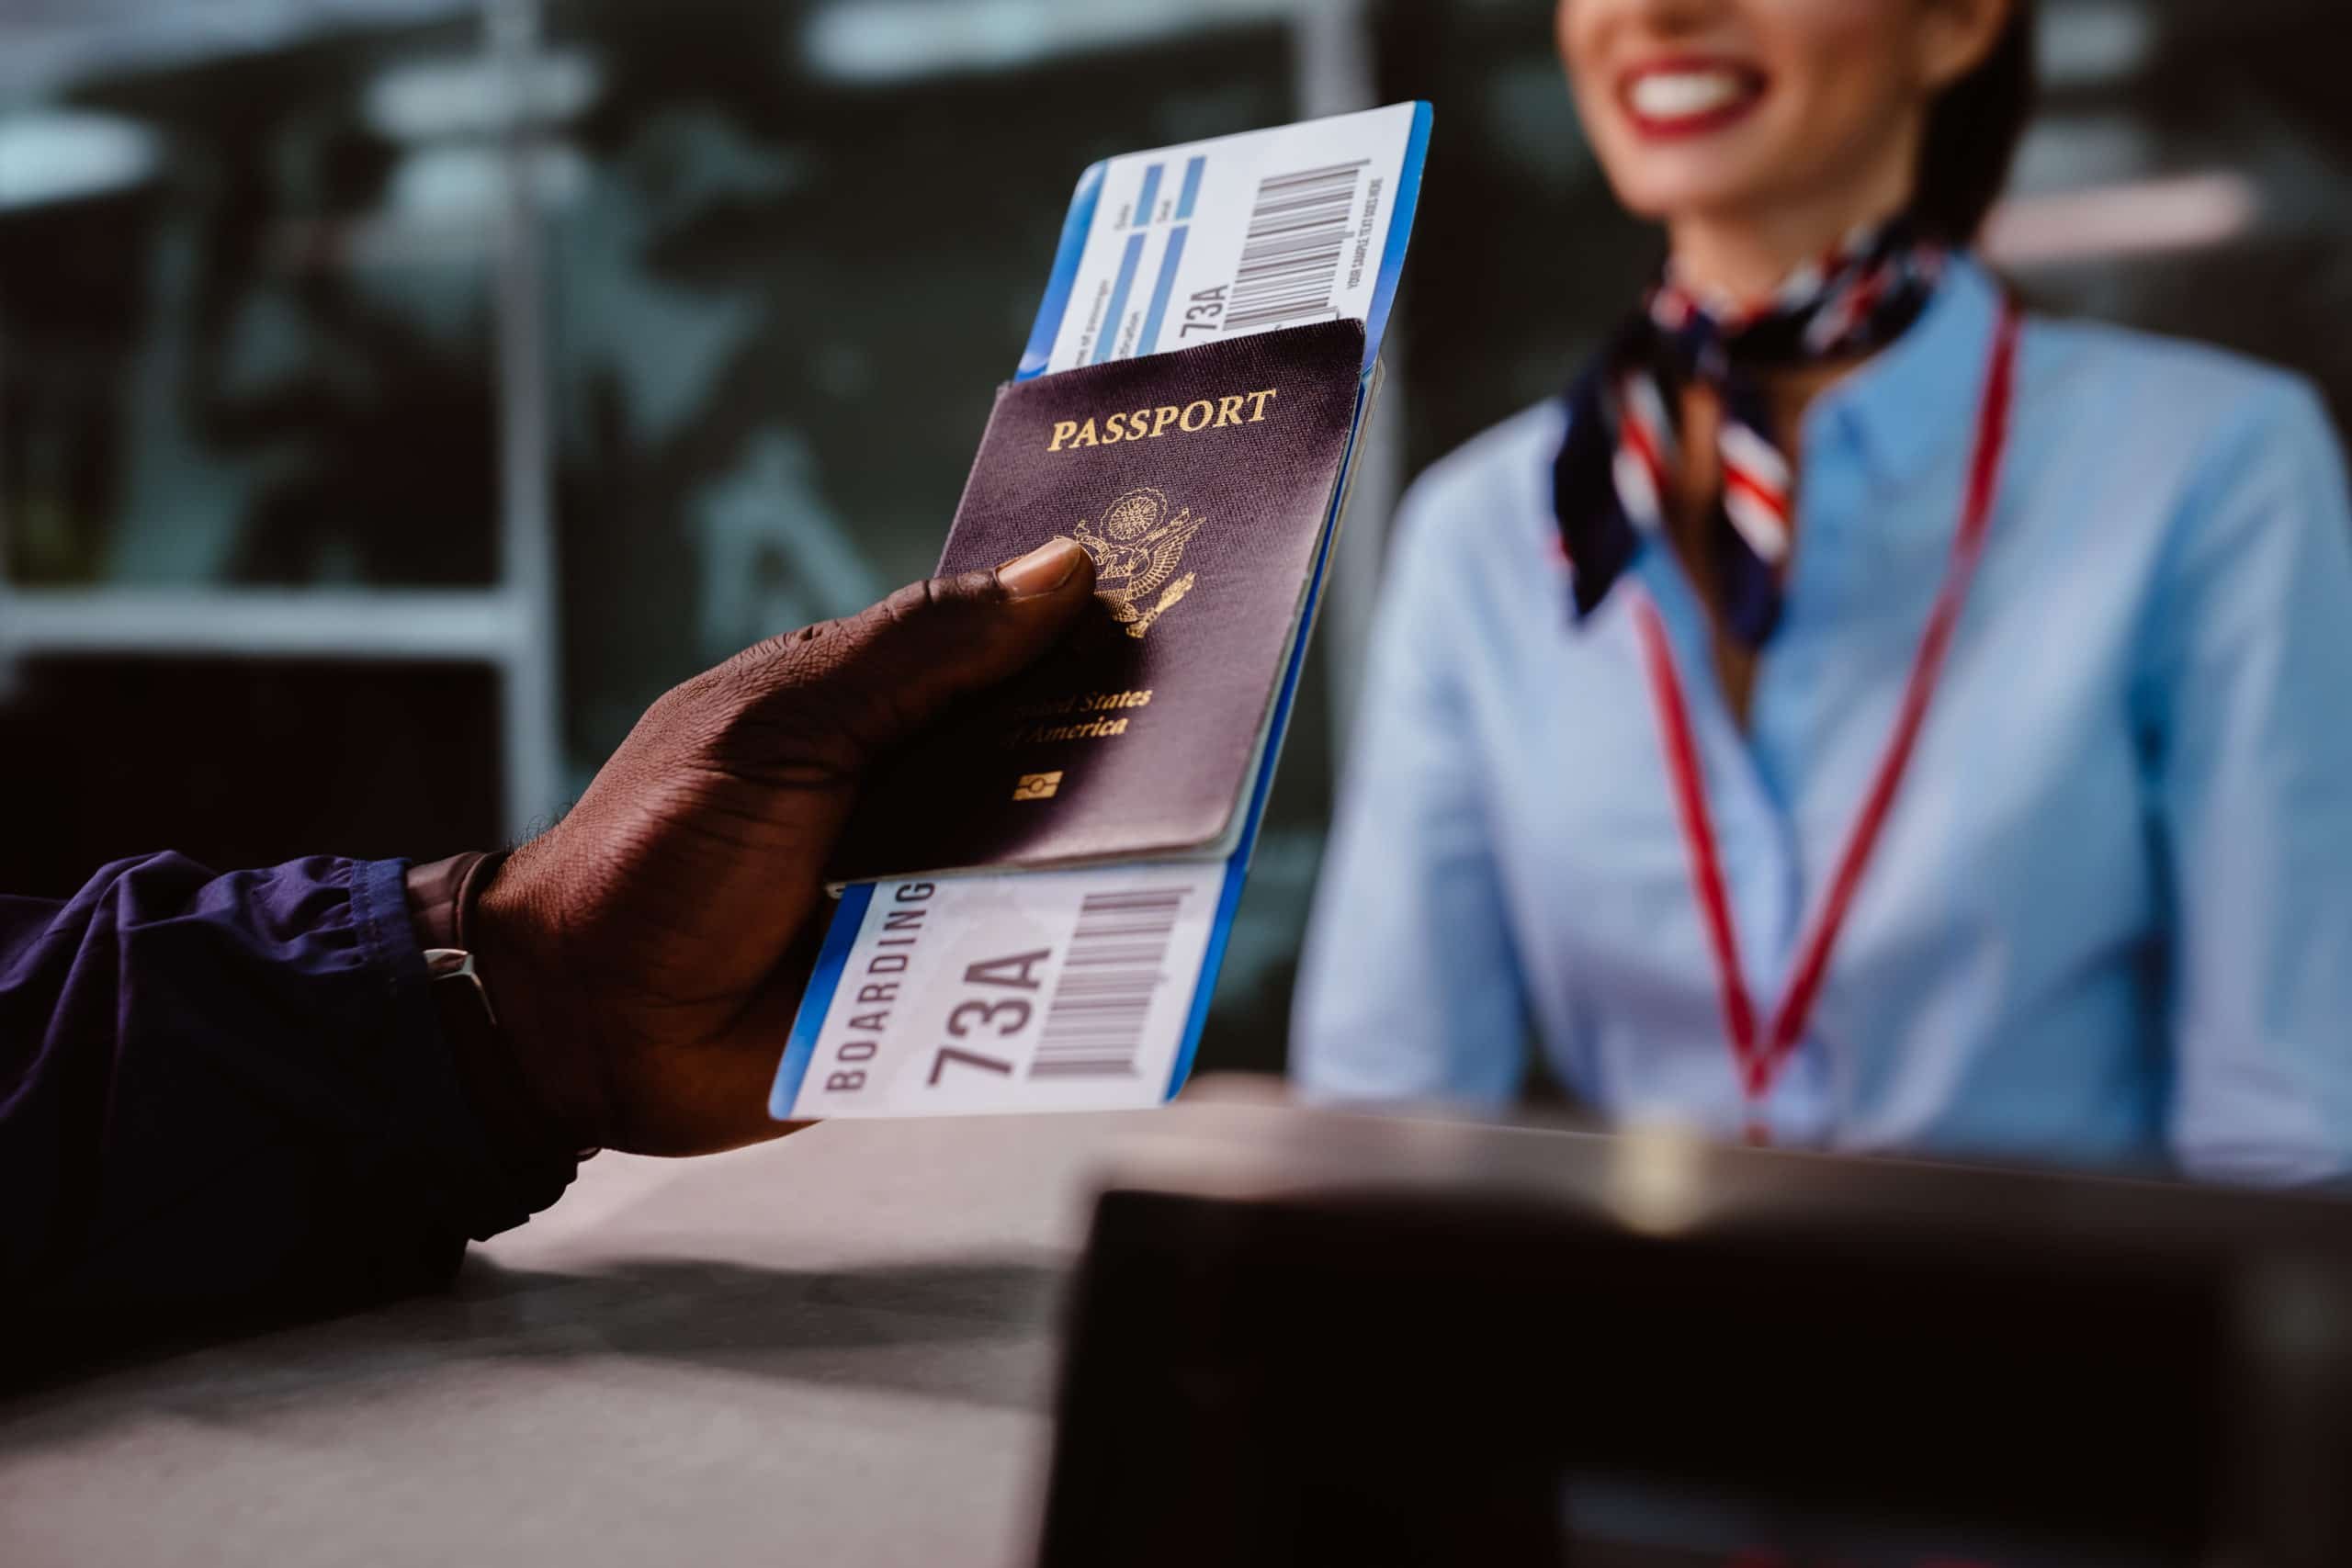 Man holding passport and boarding pass at airline check-in counter